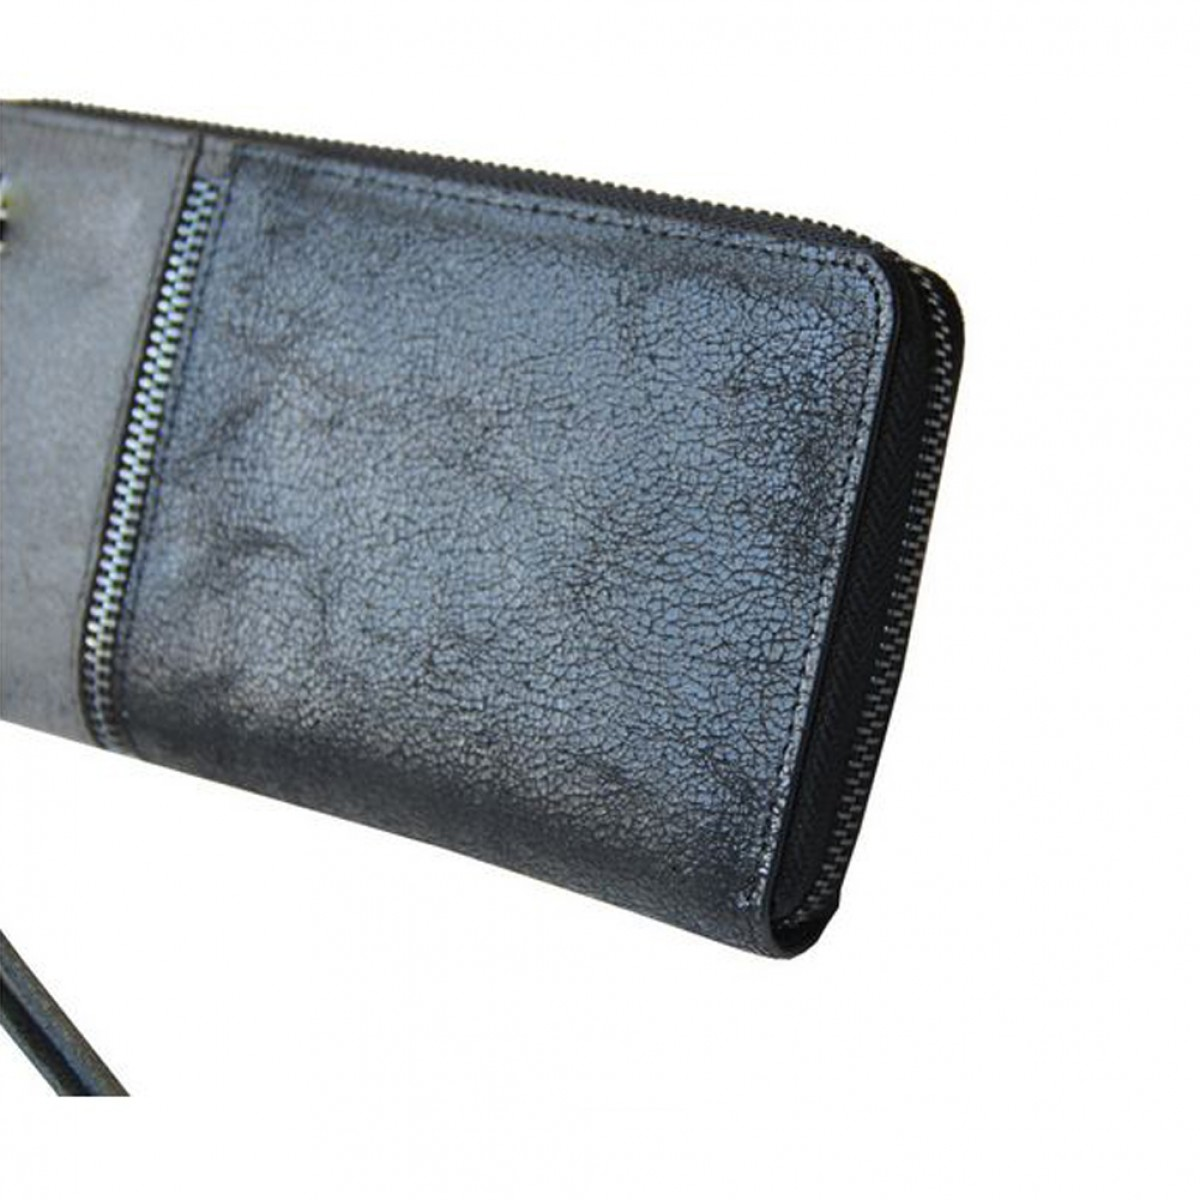 Card Holder Wallet LATICCI